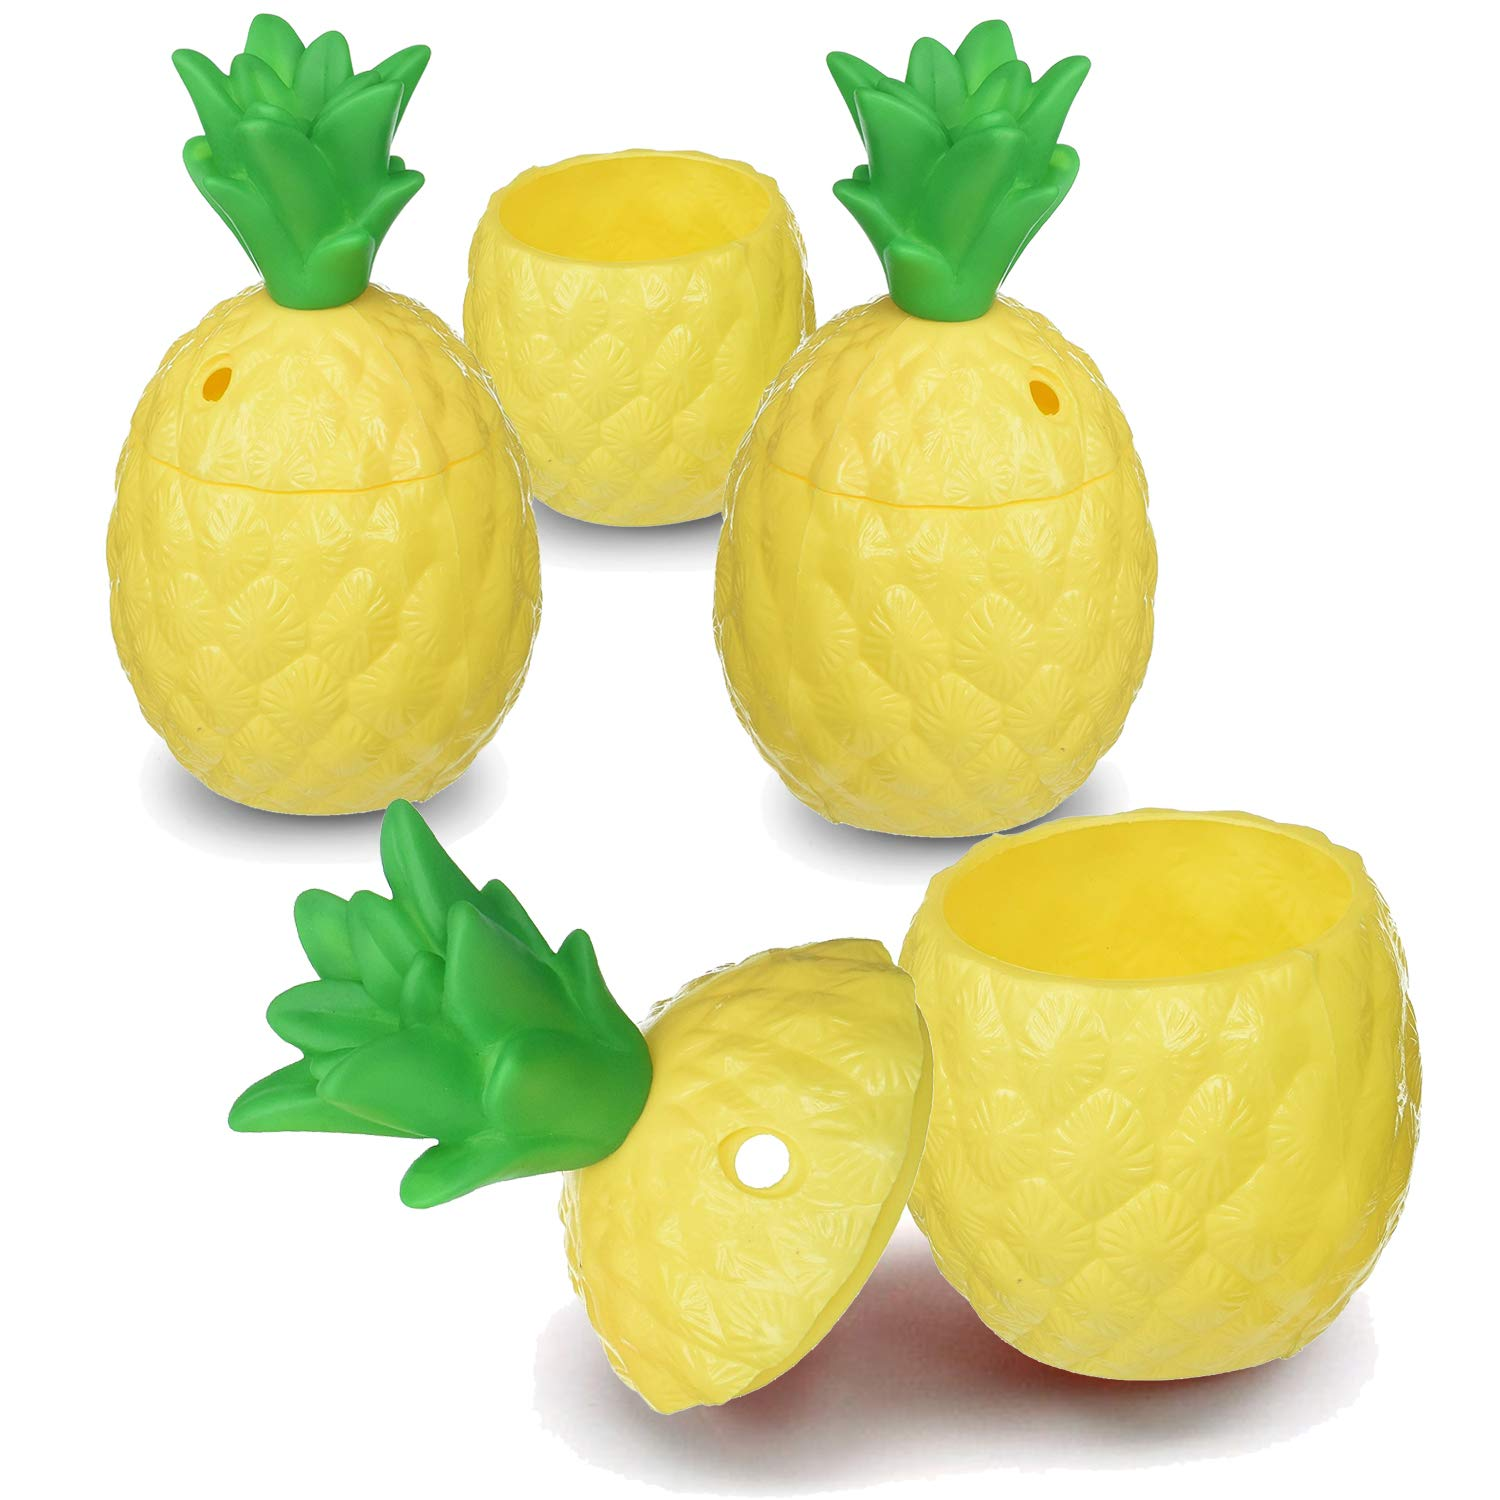 Hogue WS LLC Plastic Pineapple Luau Cups For Fun Hawaiian Children's Parties – Bulk 12 Pack – Comes With Straws – Tiki And Beach Theme Party Supplies (1 Dozen)